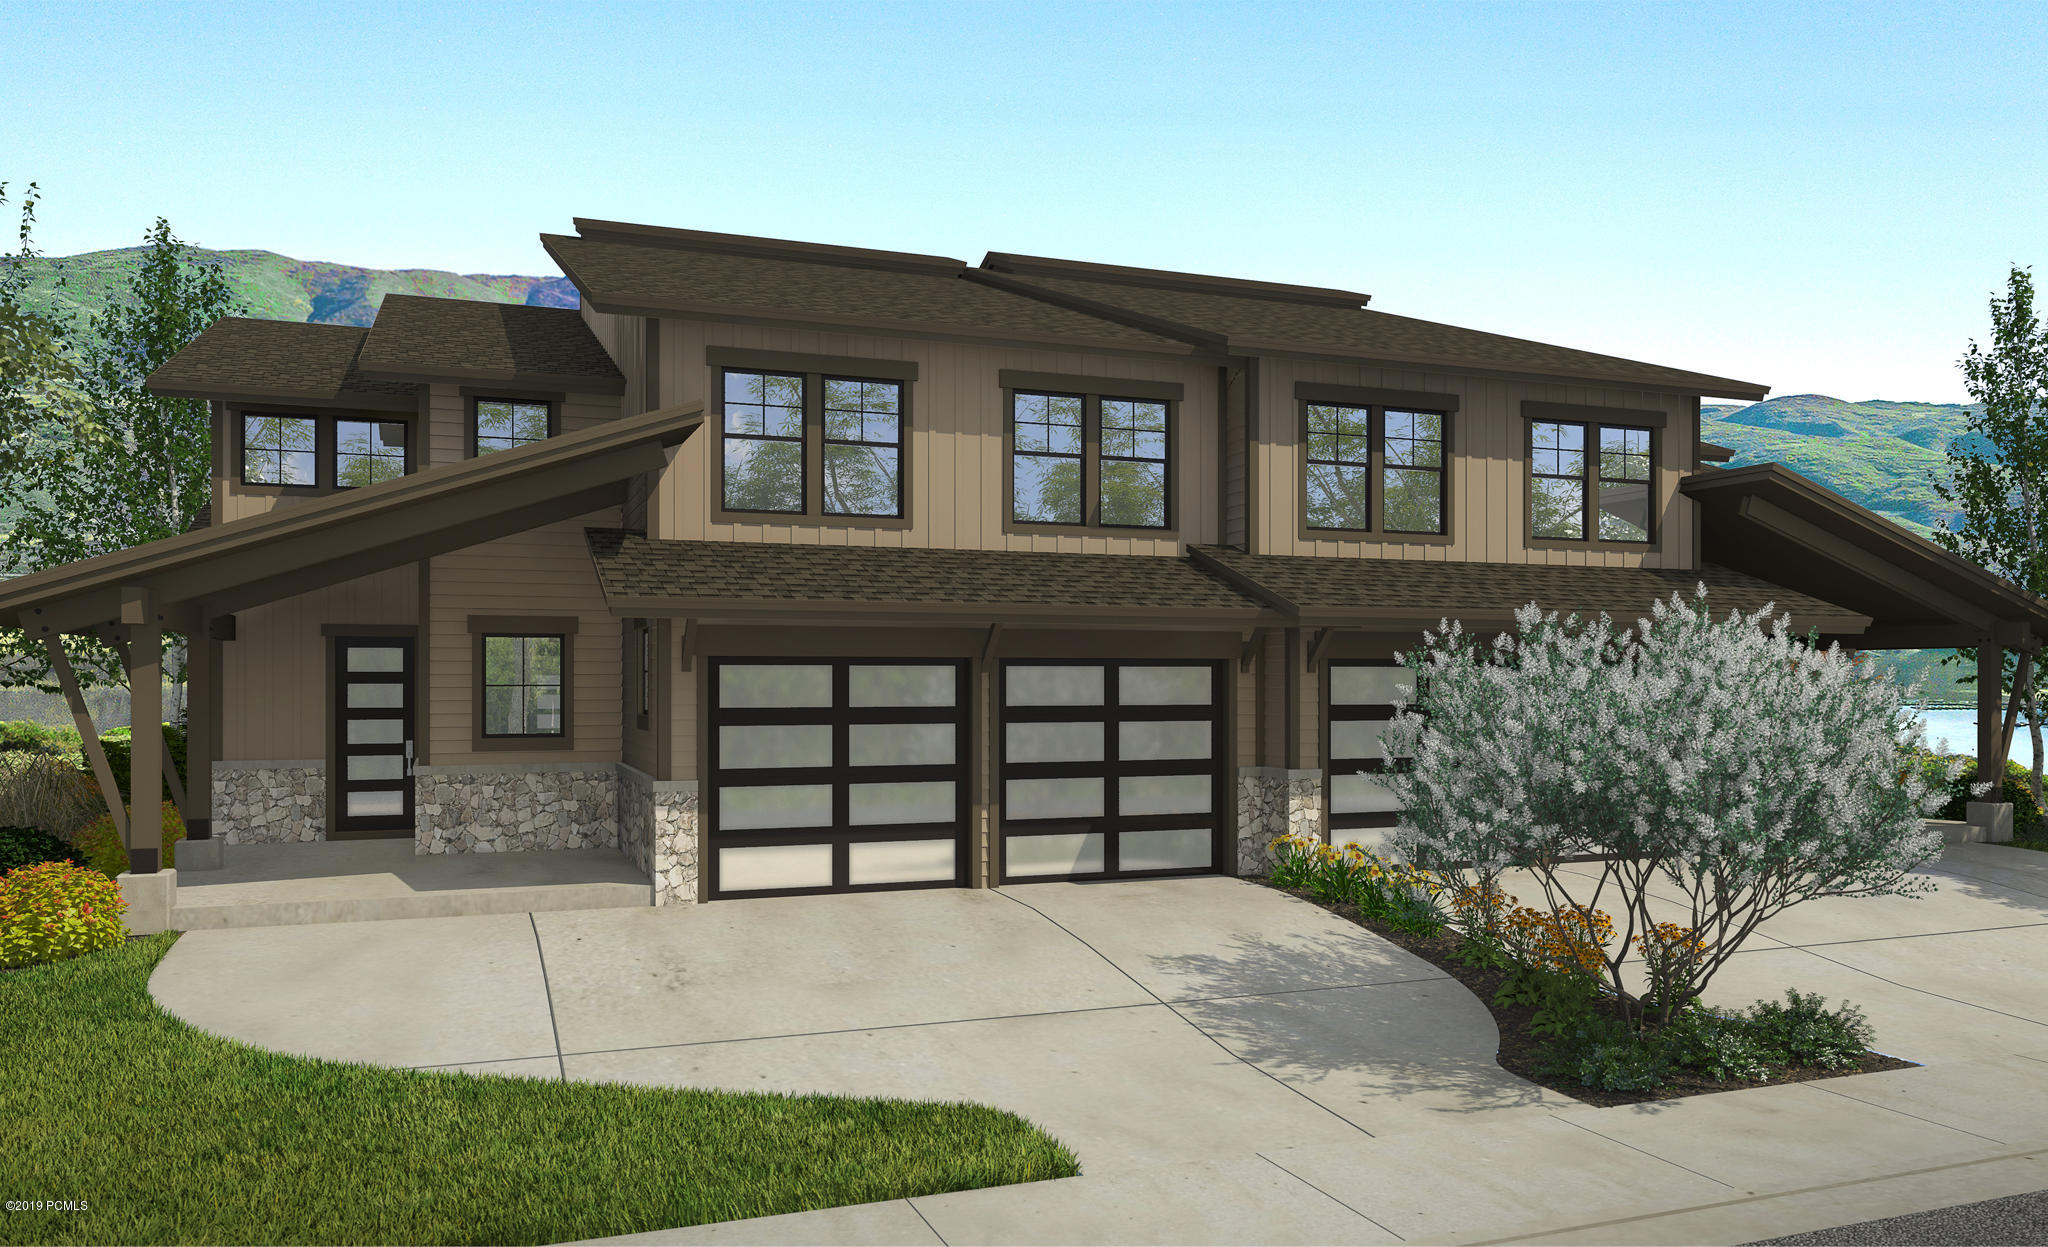 9938 Meer Circle, Heber City, Utah 84032, 4 Bedrooms Bedrooms, ,4 BathroomsBathrooms,Condominium,For Sale,Meer,20190109112430415765000000